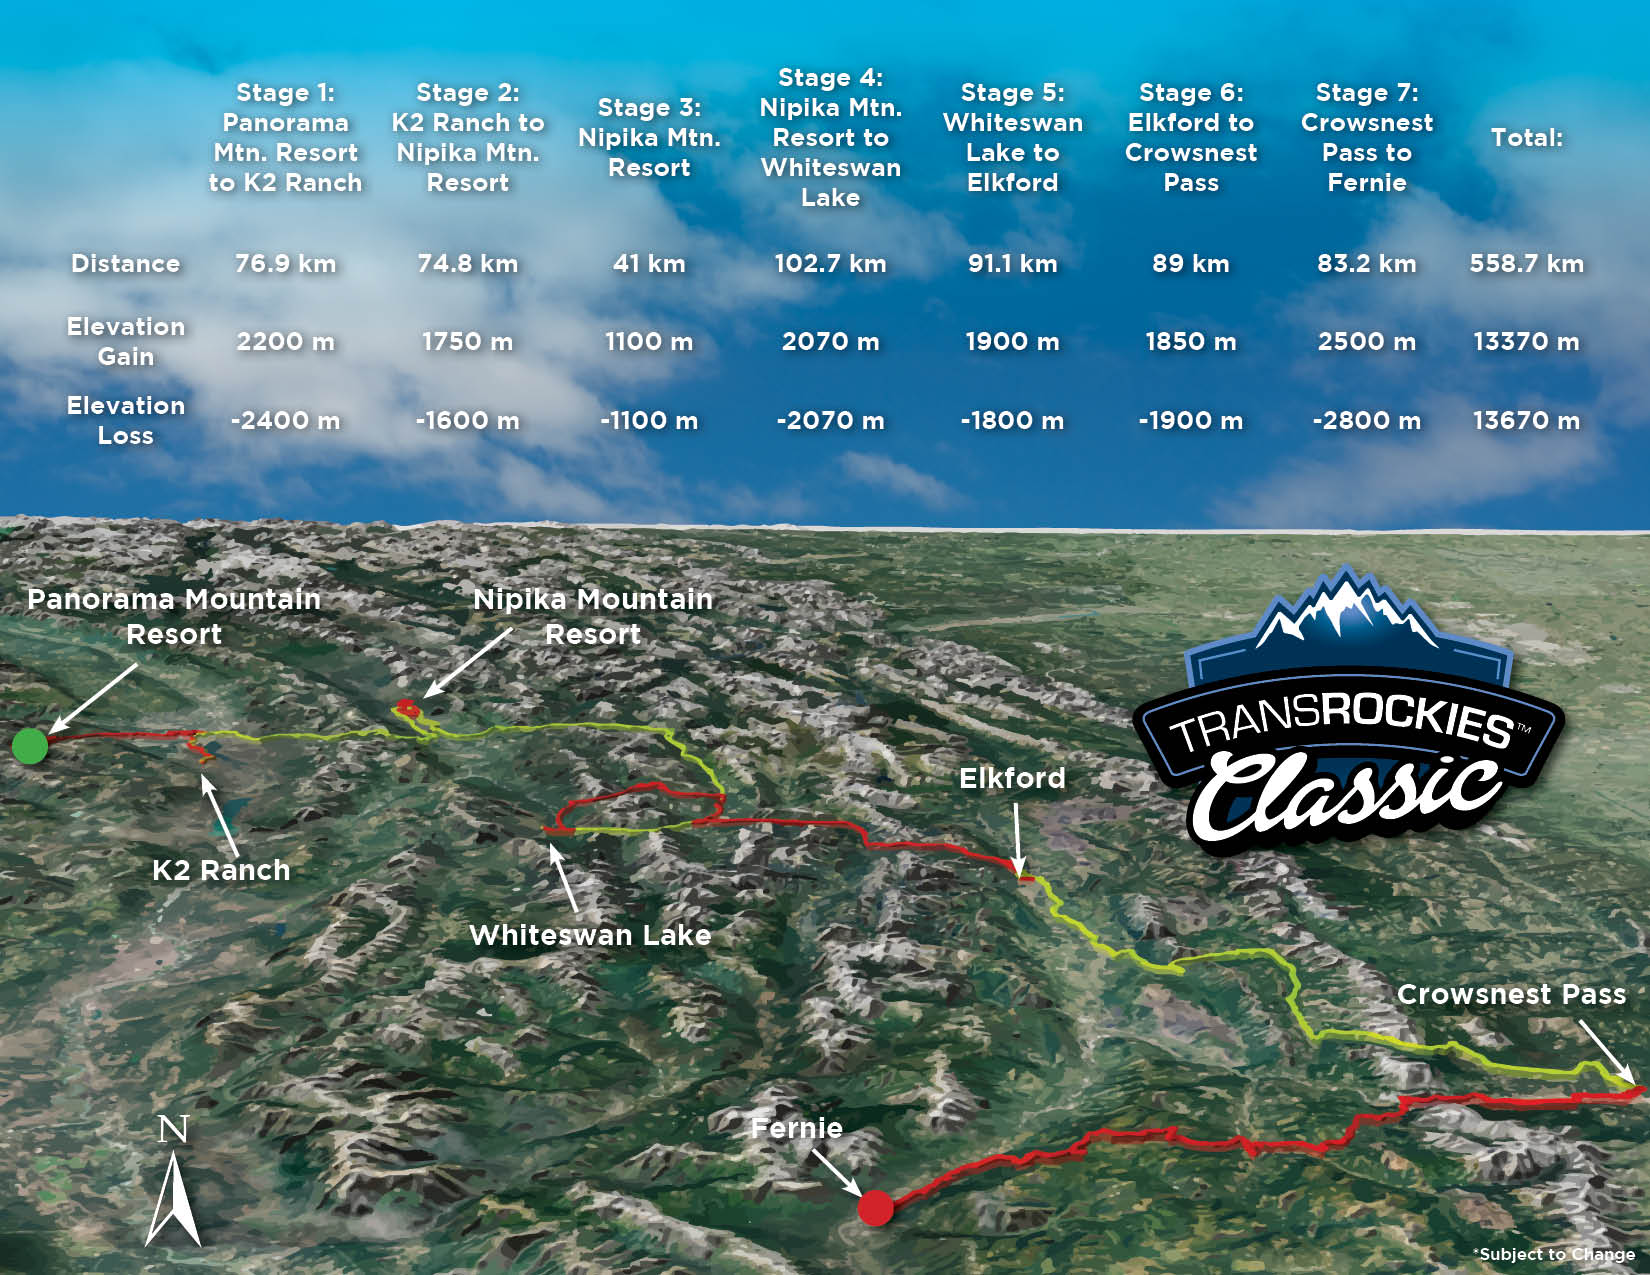 The TransRockies Classic mountain bike stage race route map, 2019